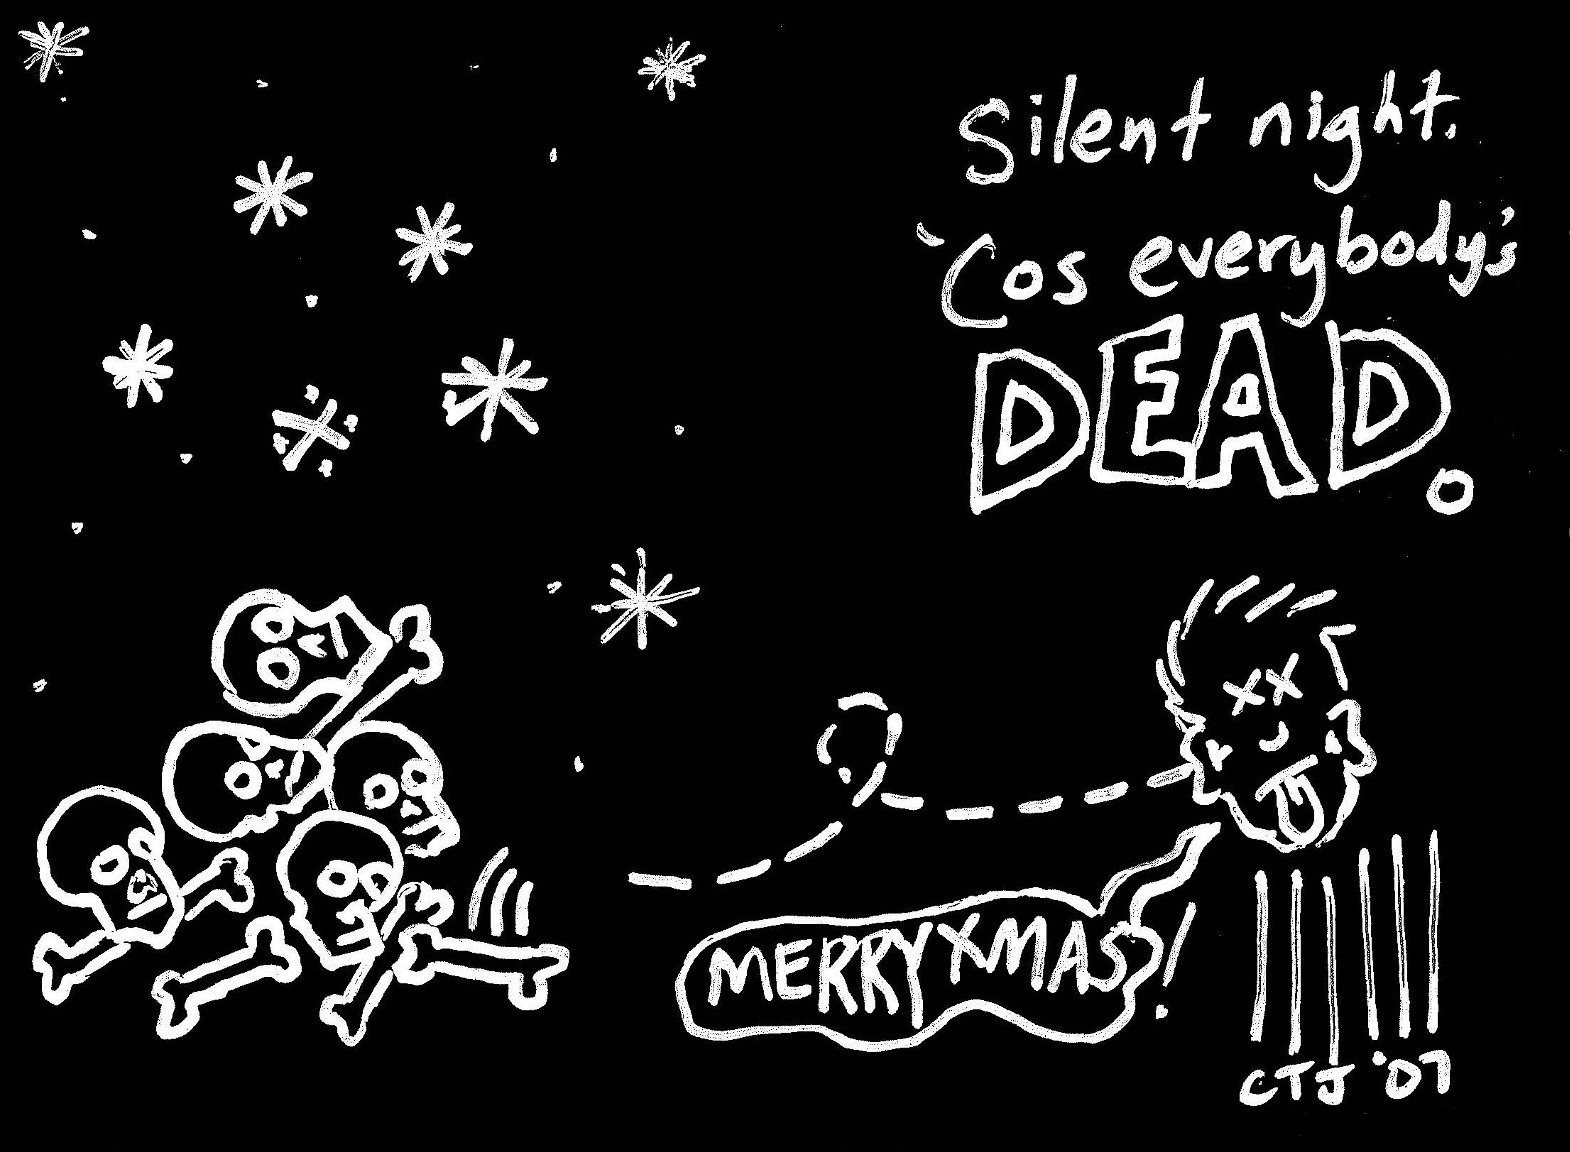 Original Christmas Card 4 Silent Night Cos Everybodys